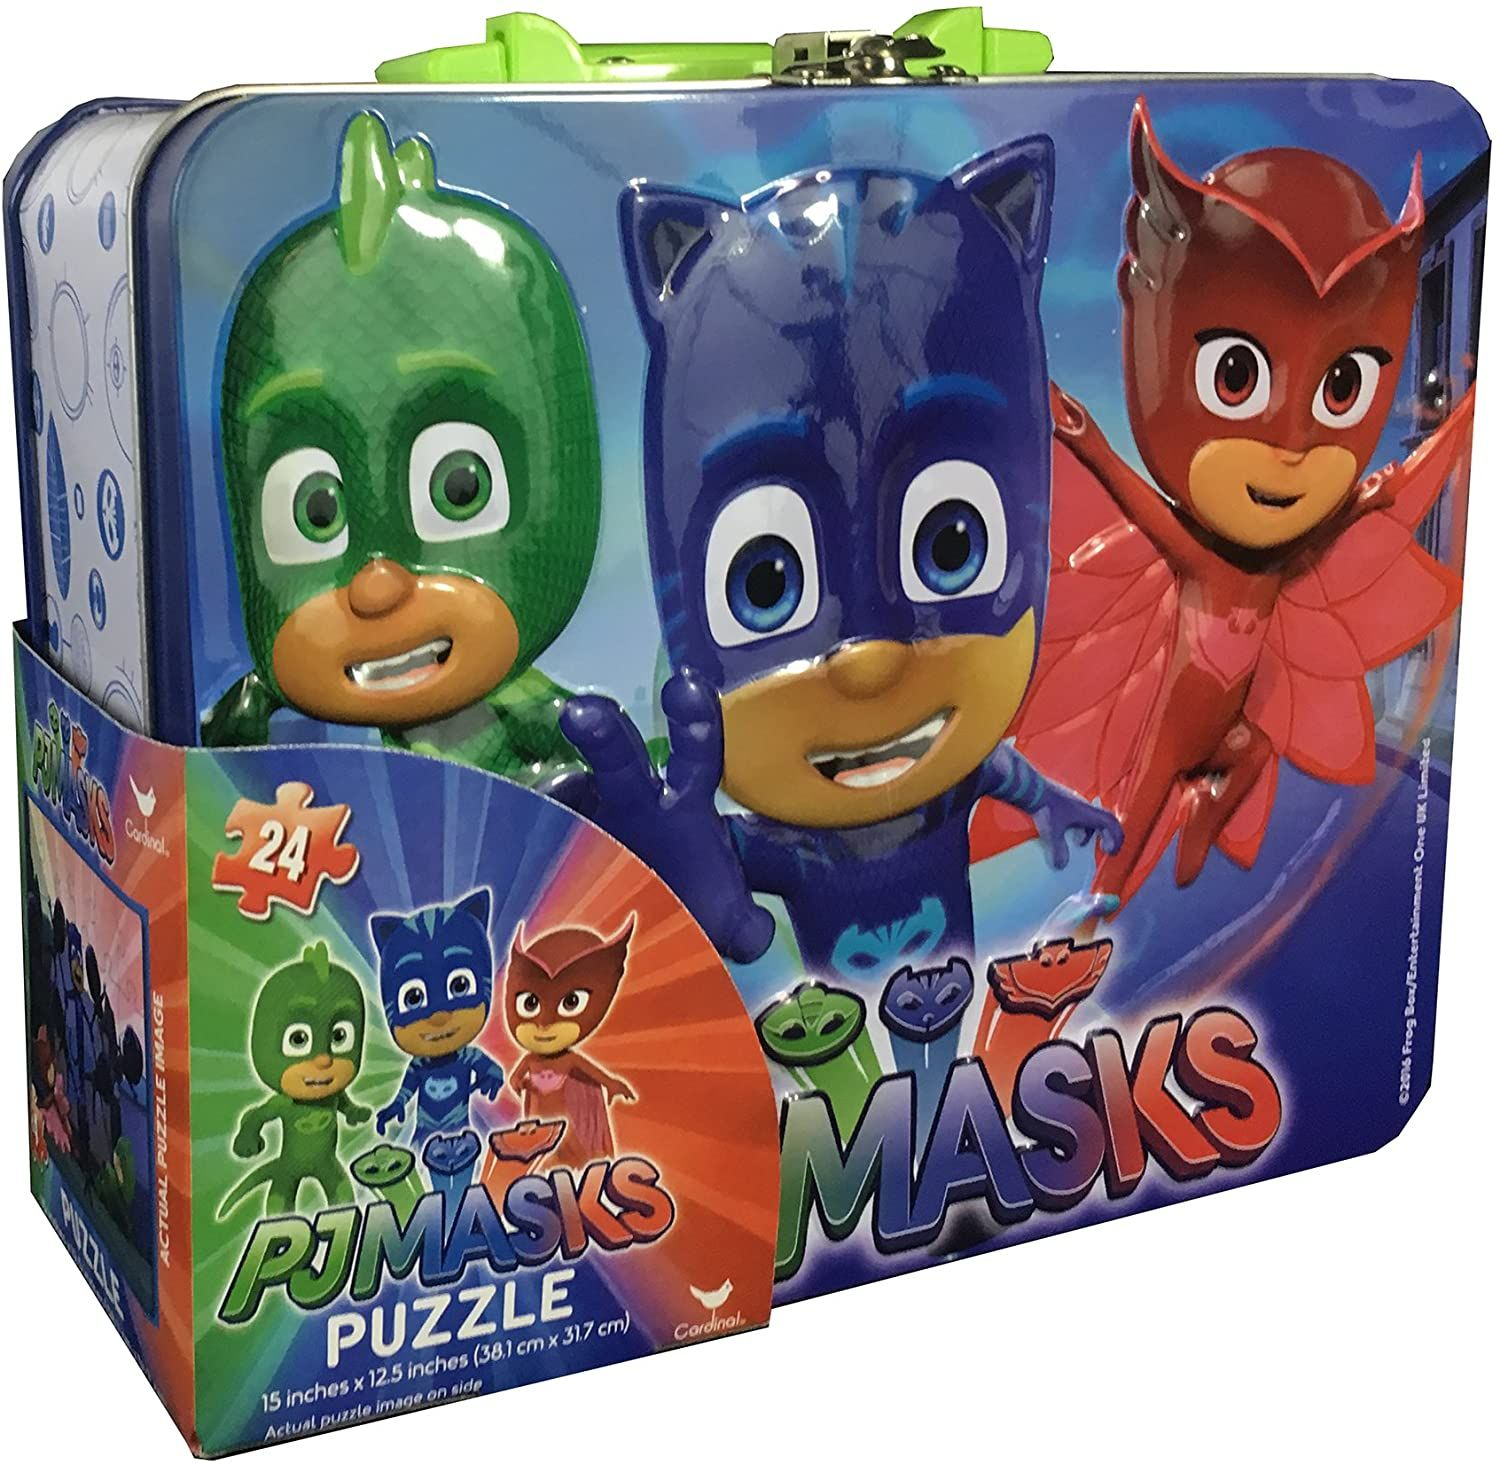 Pin On Puzzles For Kids